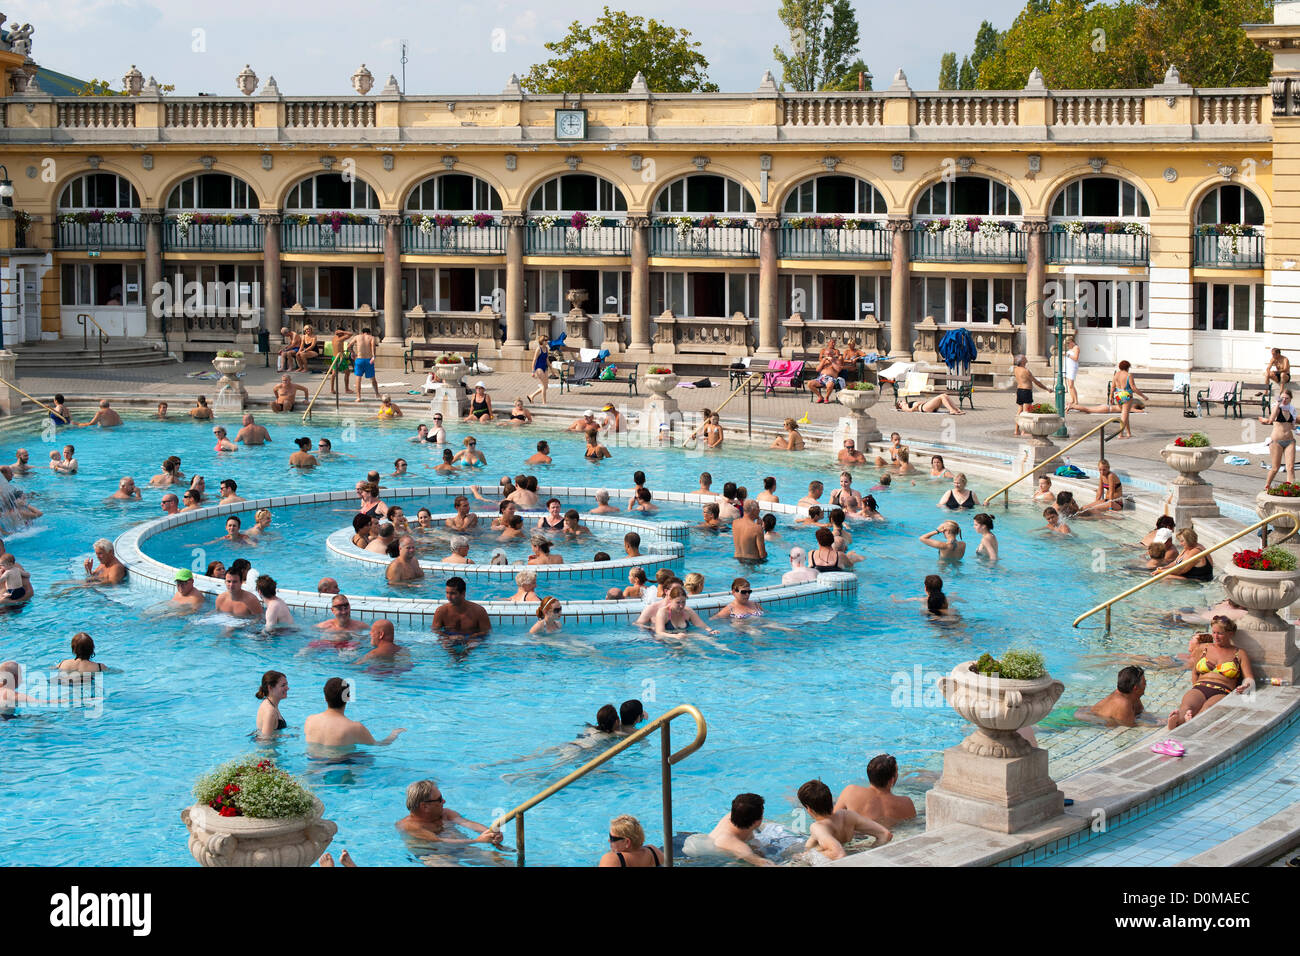 Szechenyi Baths in Budapest, the capital of Hungary. - Stock Image